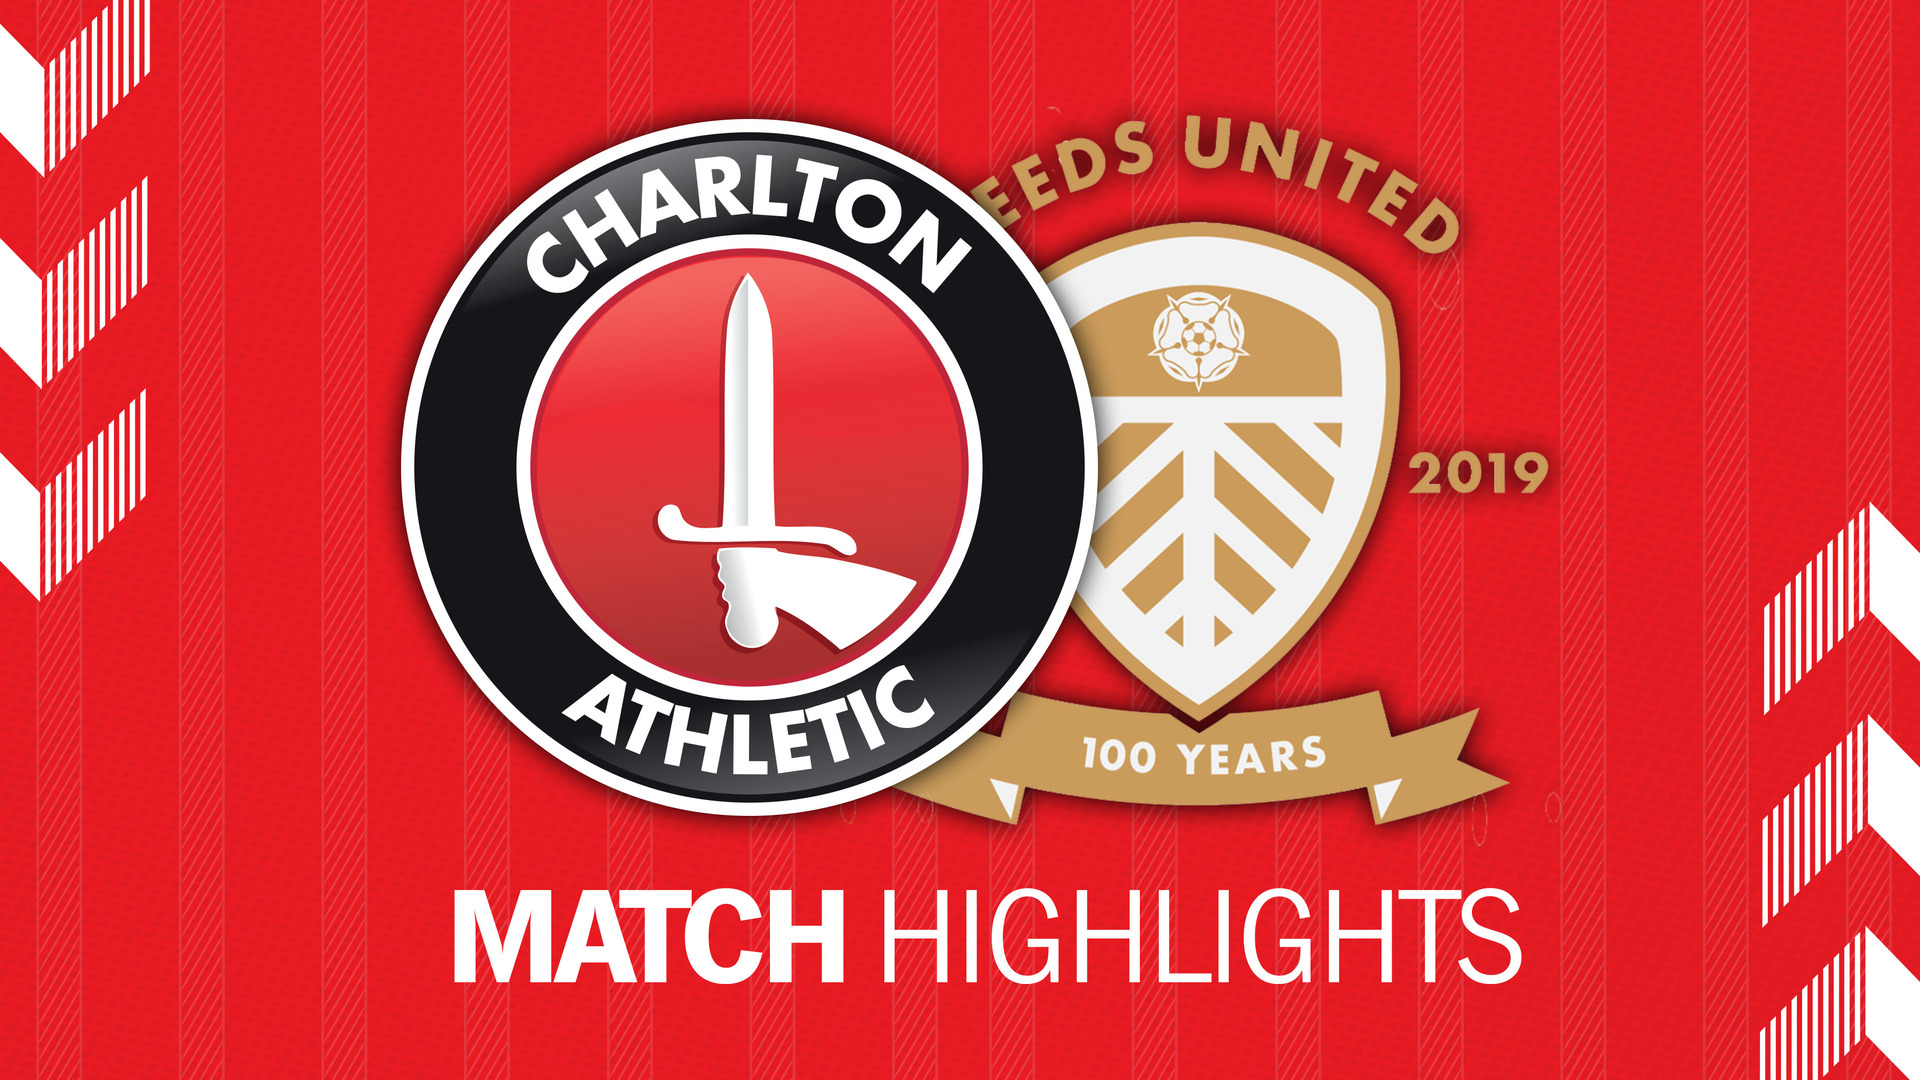 10 HIGHLIGHTS | Charlton 1 Leeds United 0 (September 2019)